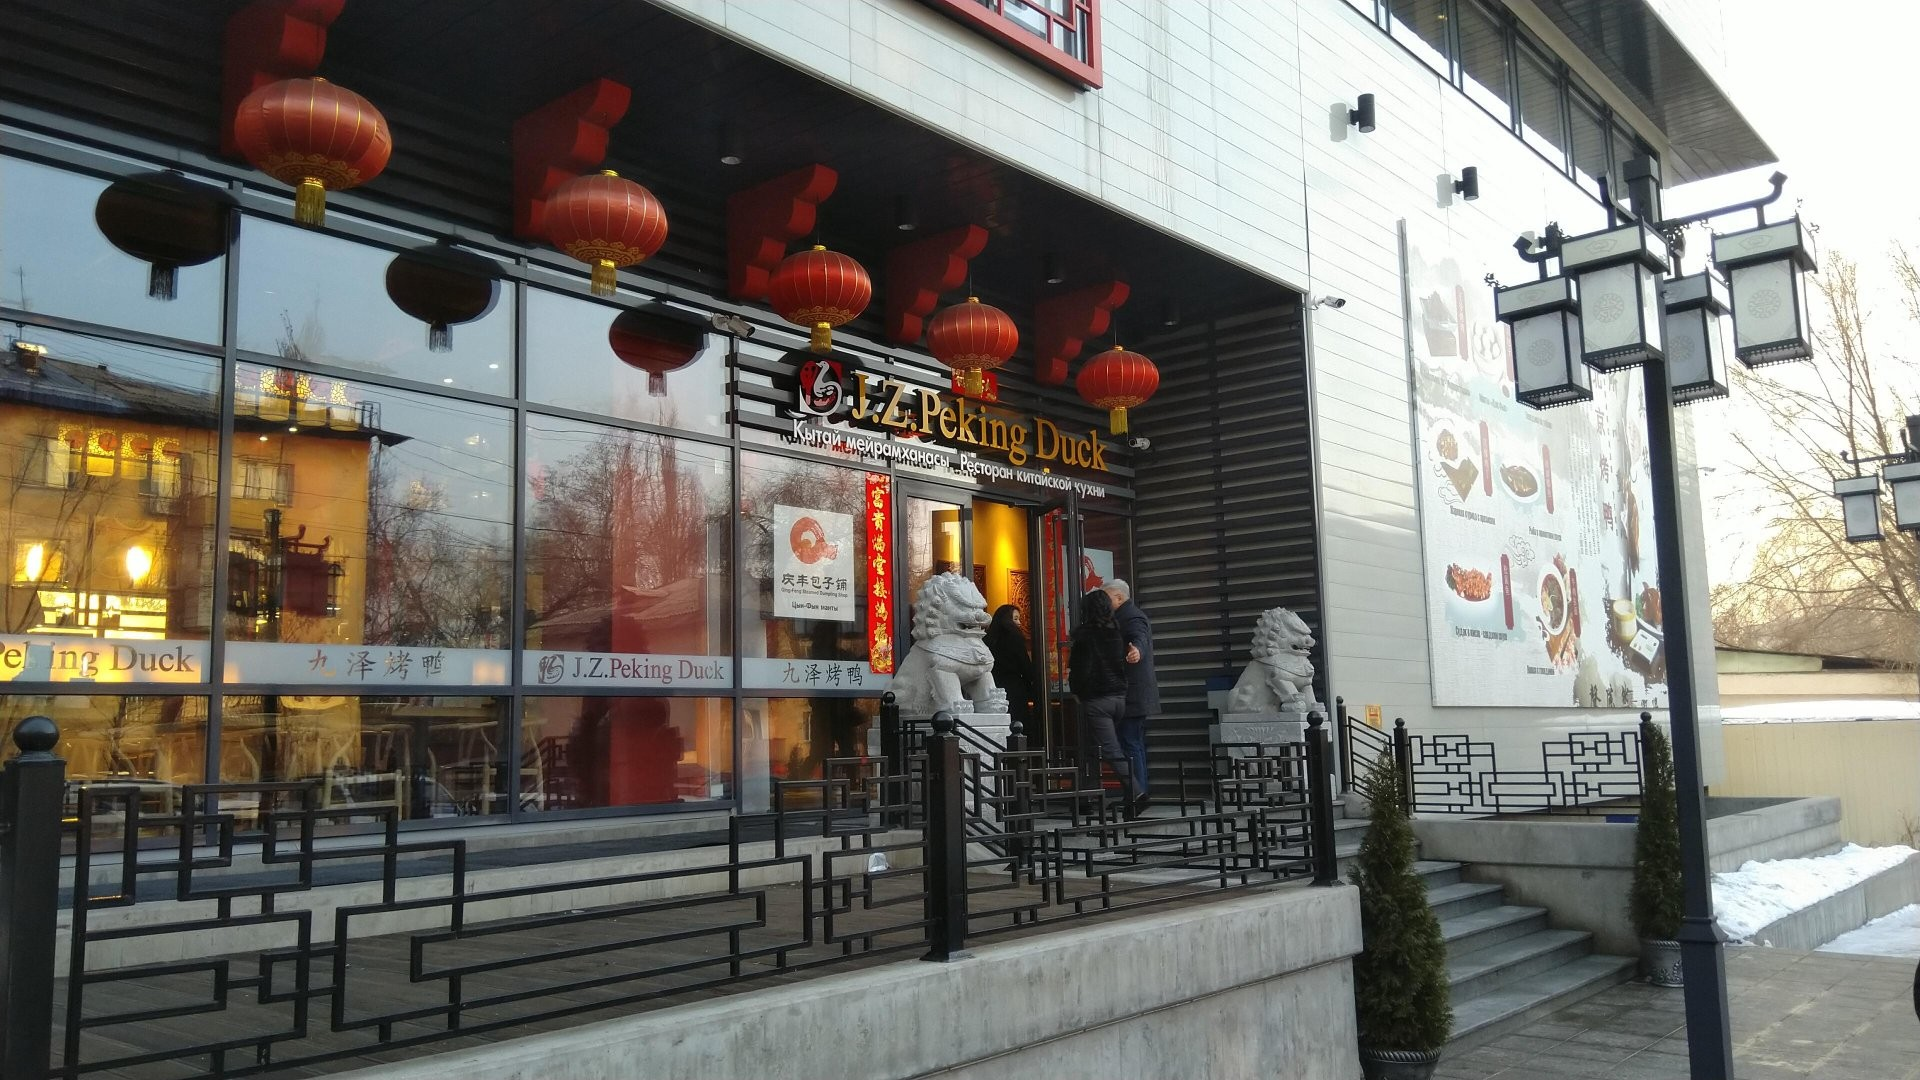 J.Z. Peking Duck в Алматы